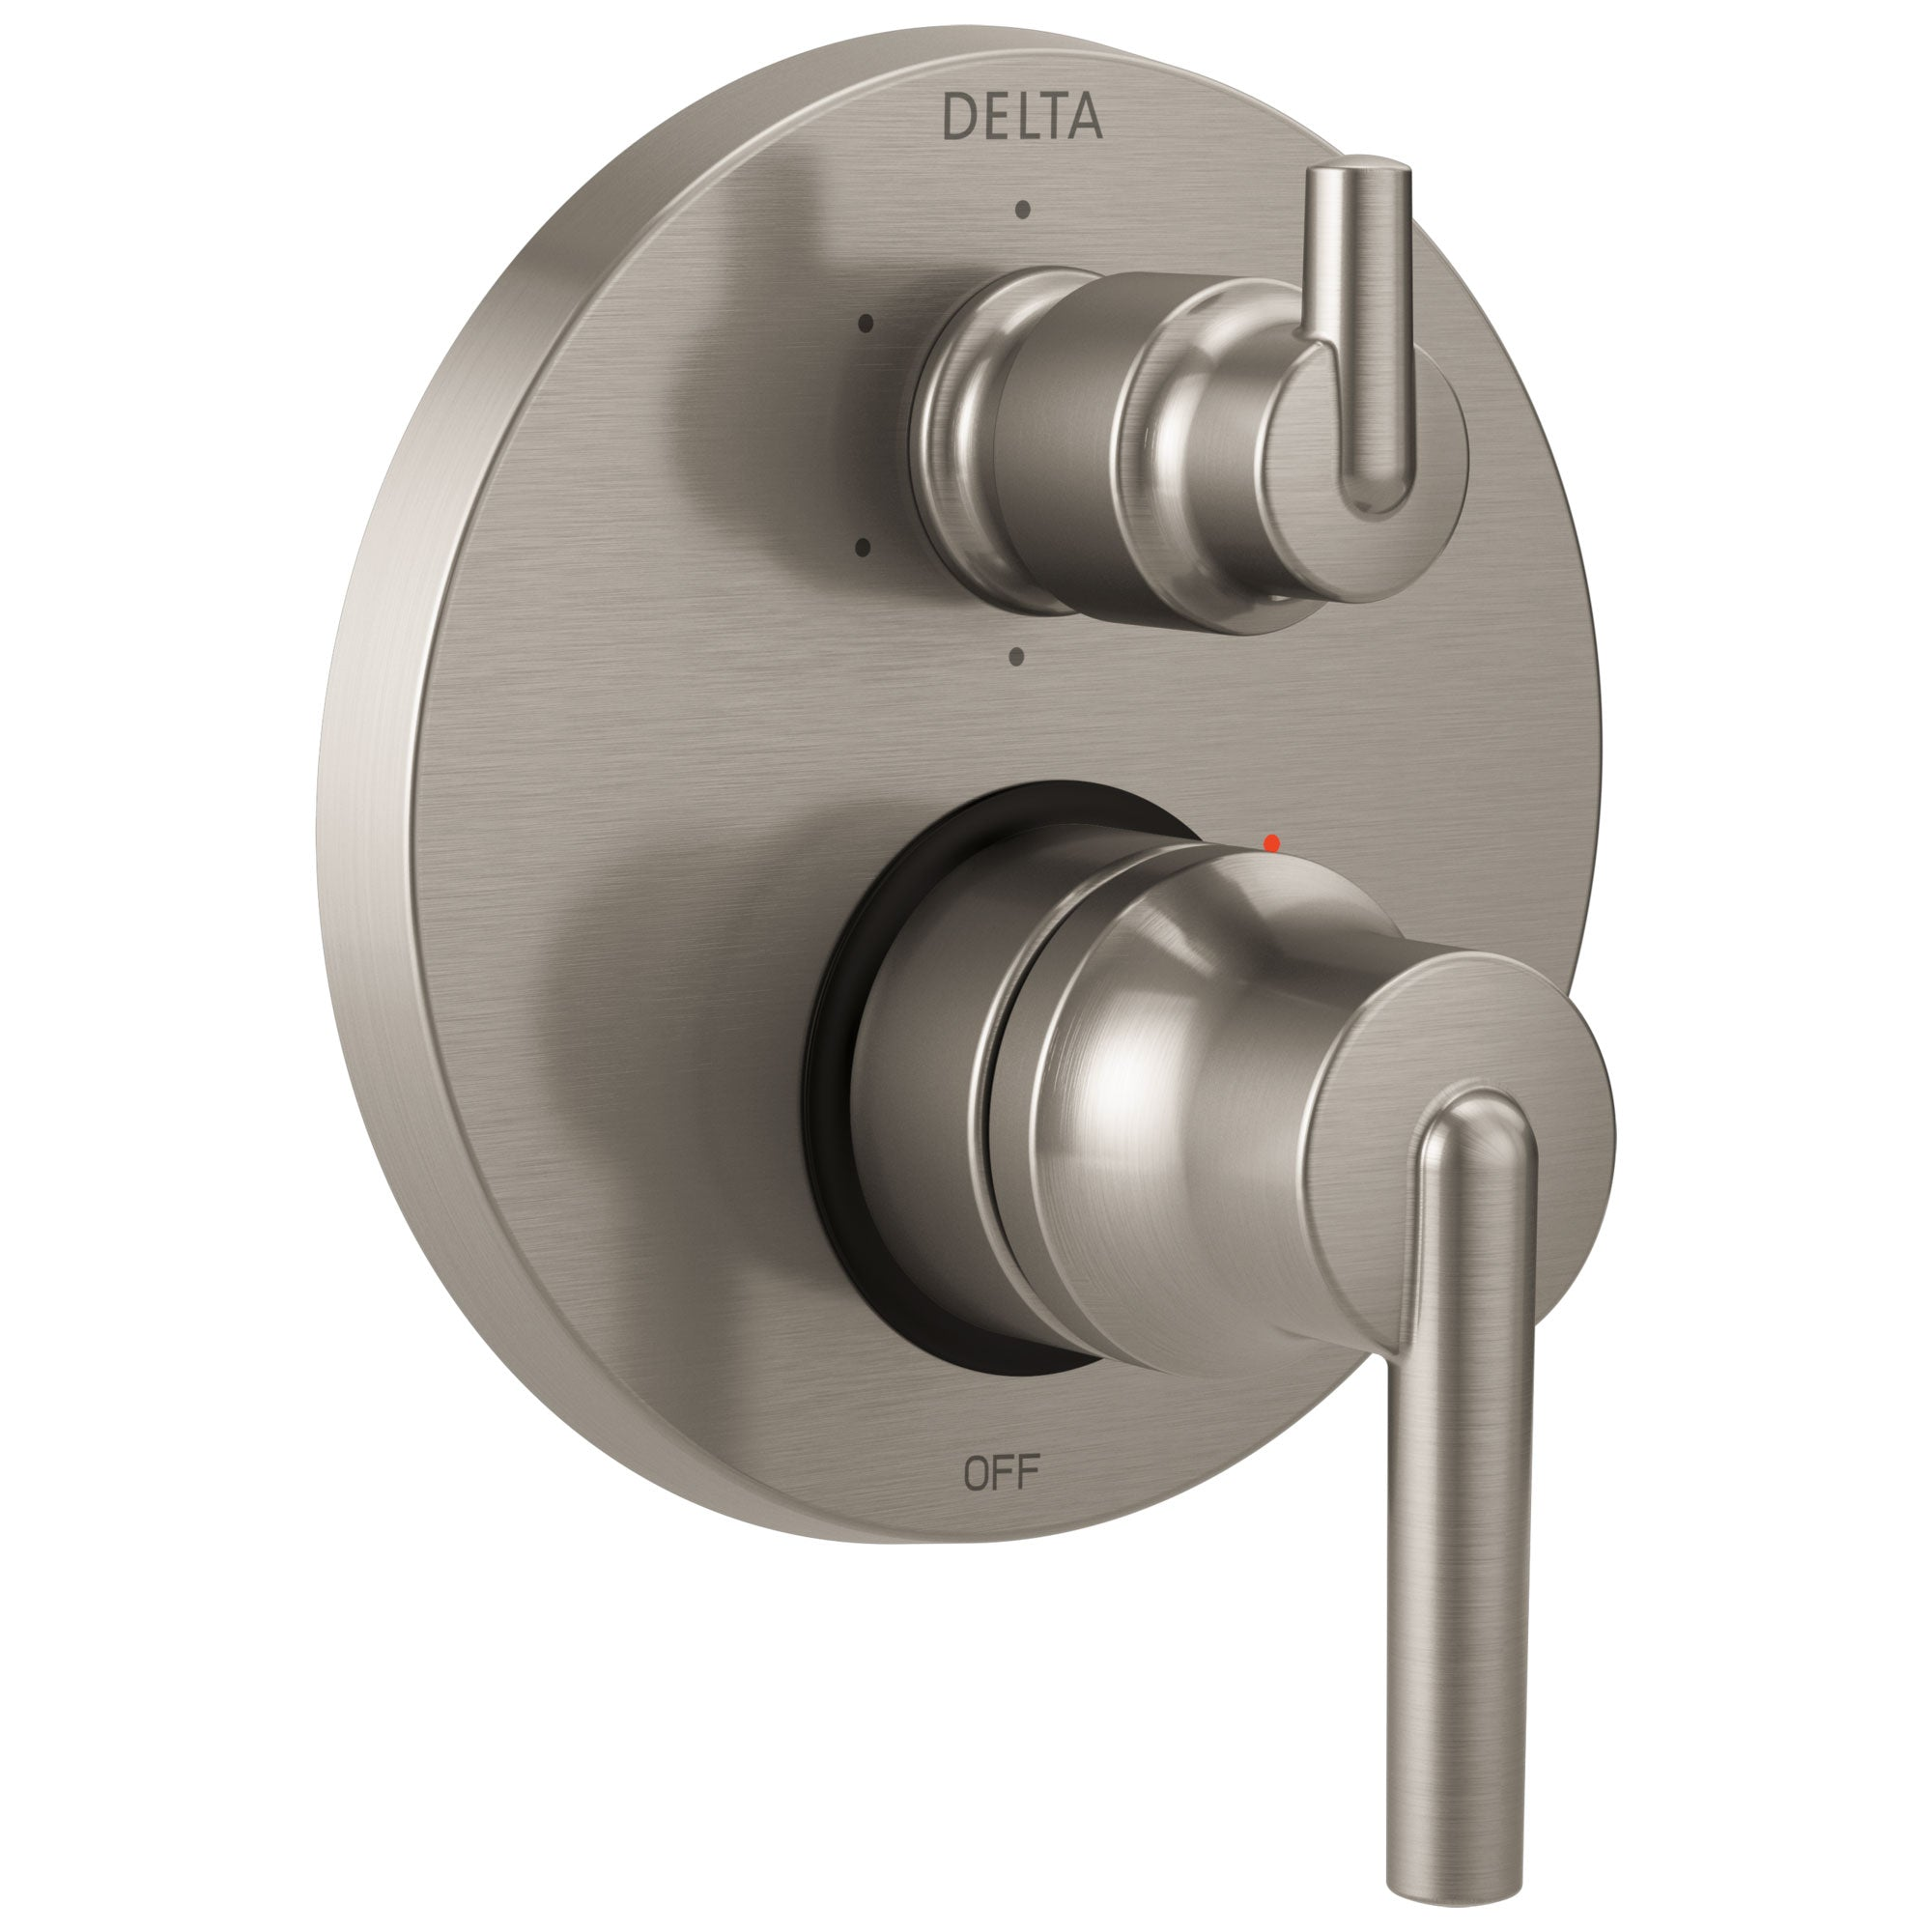 Delta Trinsic Collection Stainless Steel Finish Shower Faucet Control Handle with 6-Setting Integrated Diverter Trim (Requires Valve) DT24959SS